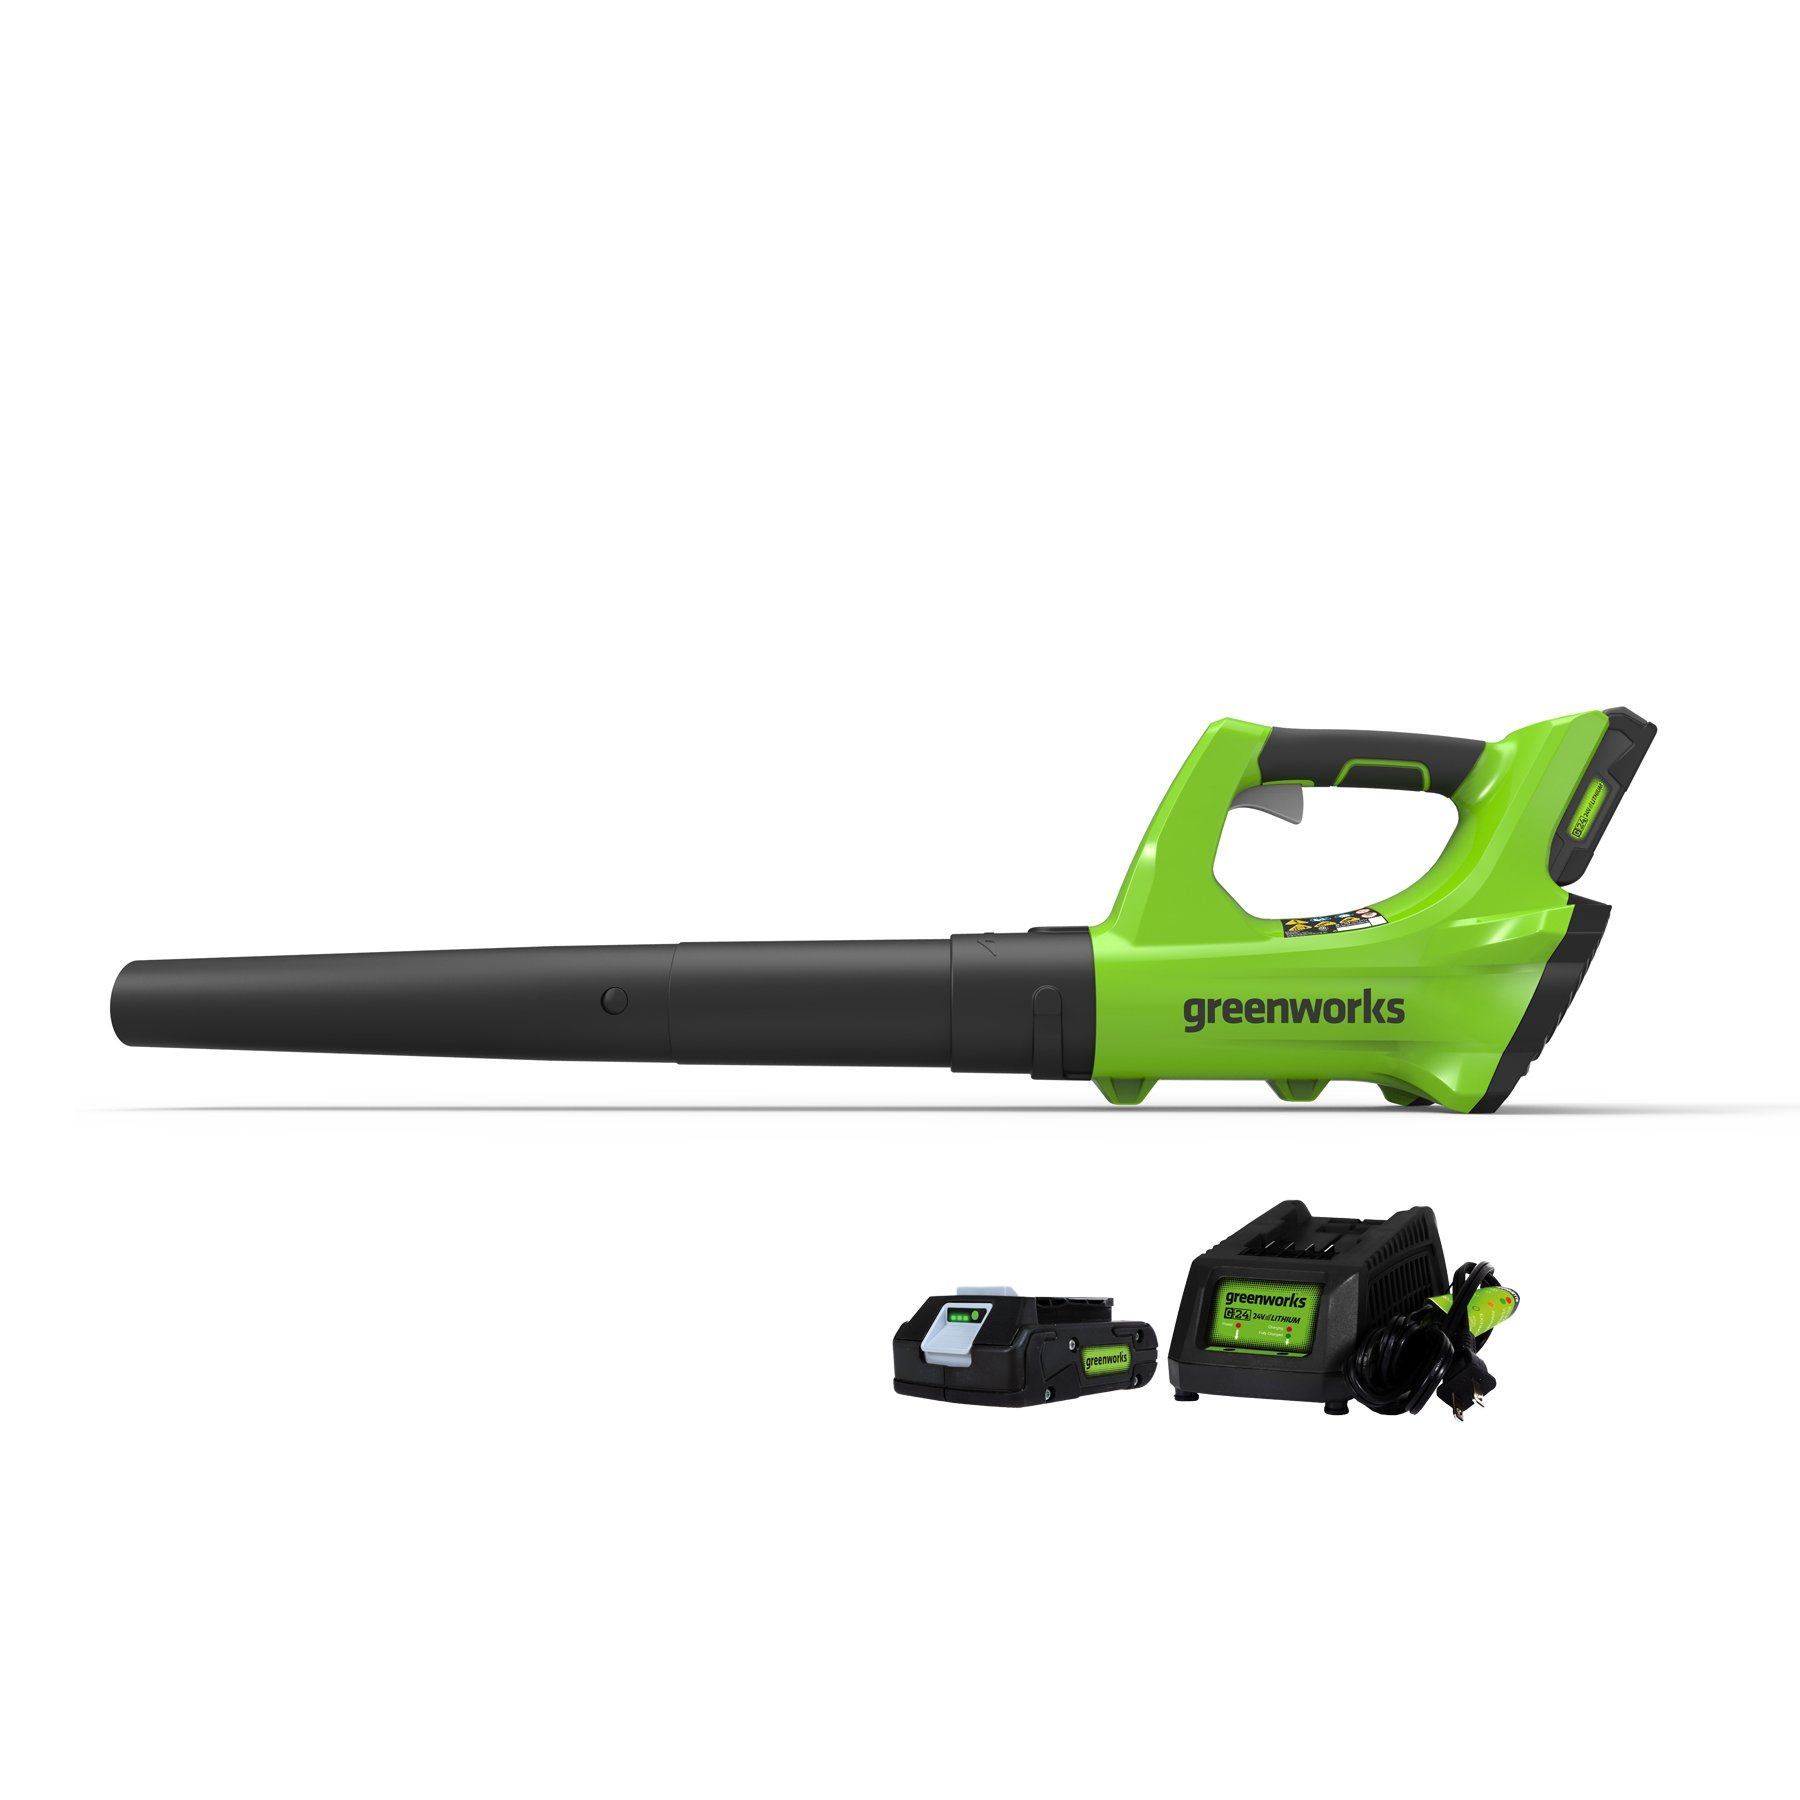 Greenworks 24V Cordless Jet Blower, 2.0 AH Battery Included 2400702 by Greenworks